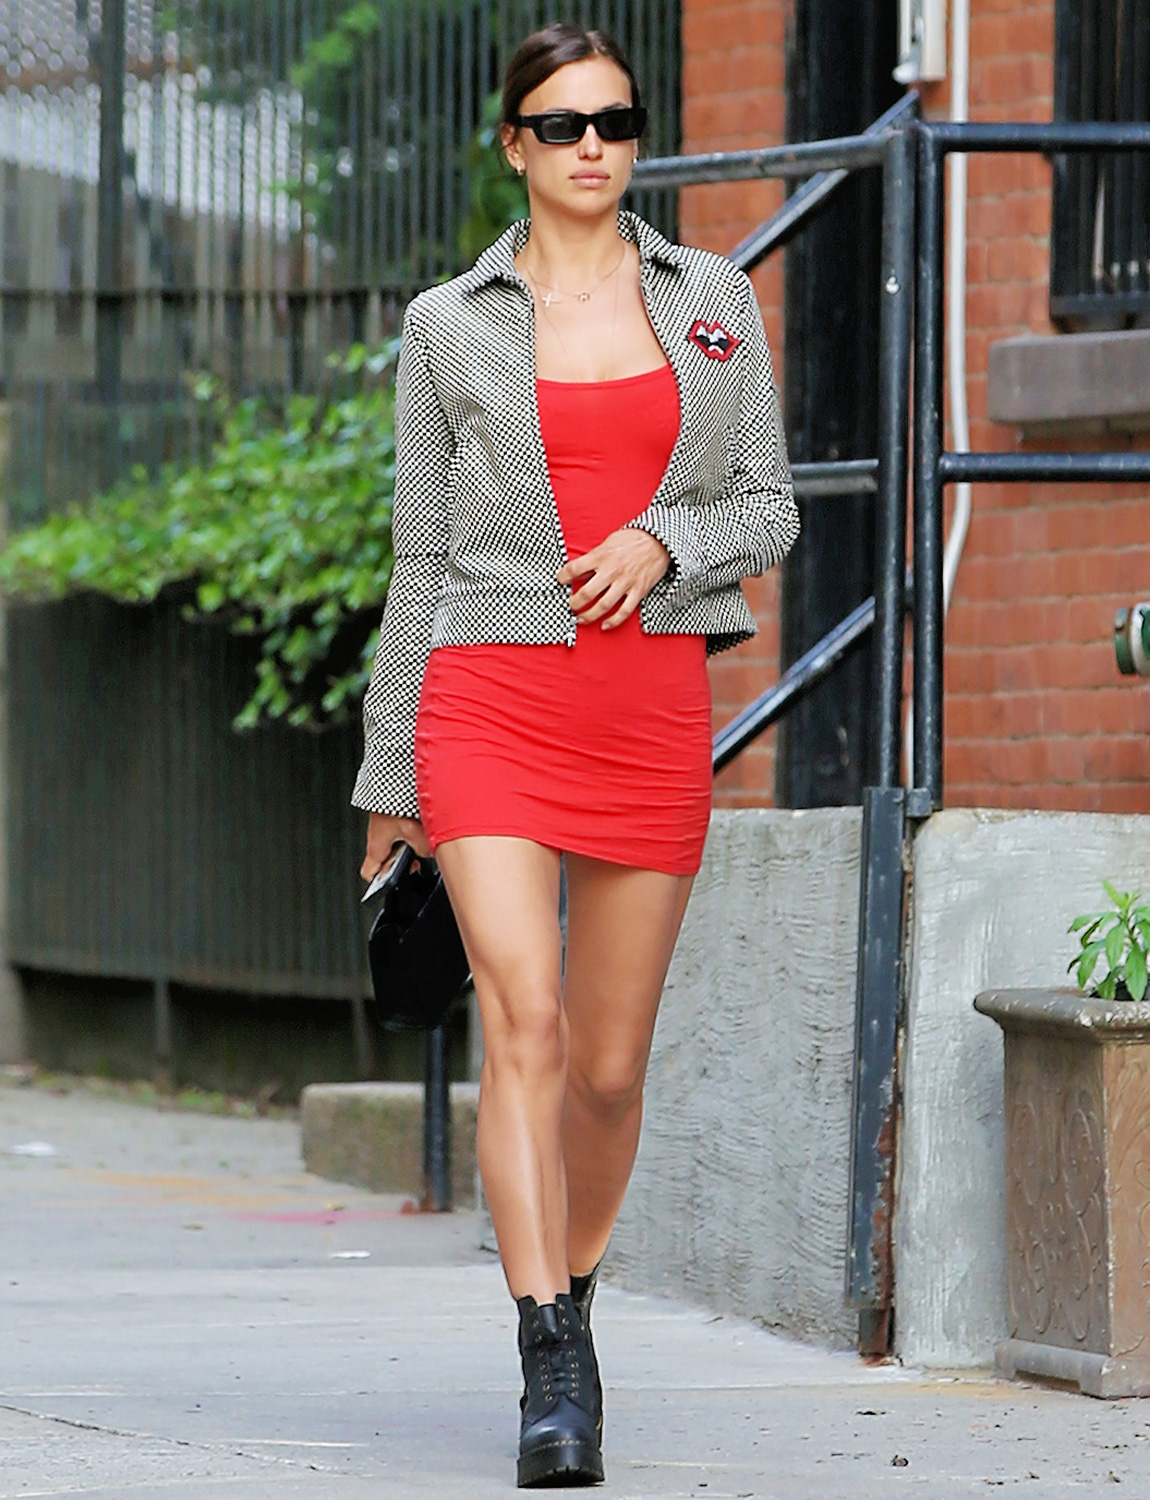 Model Irina Shayk Is Seen In A Short Red Dress, Chrome Hearts Short-Waisted Jacket